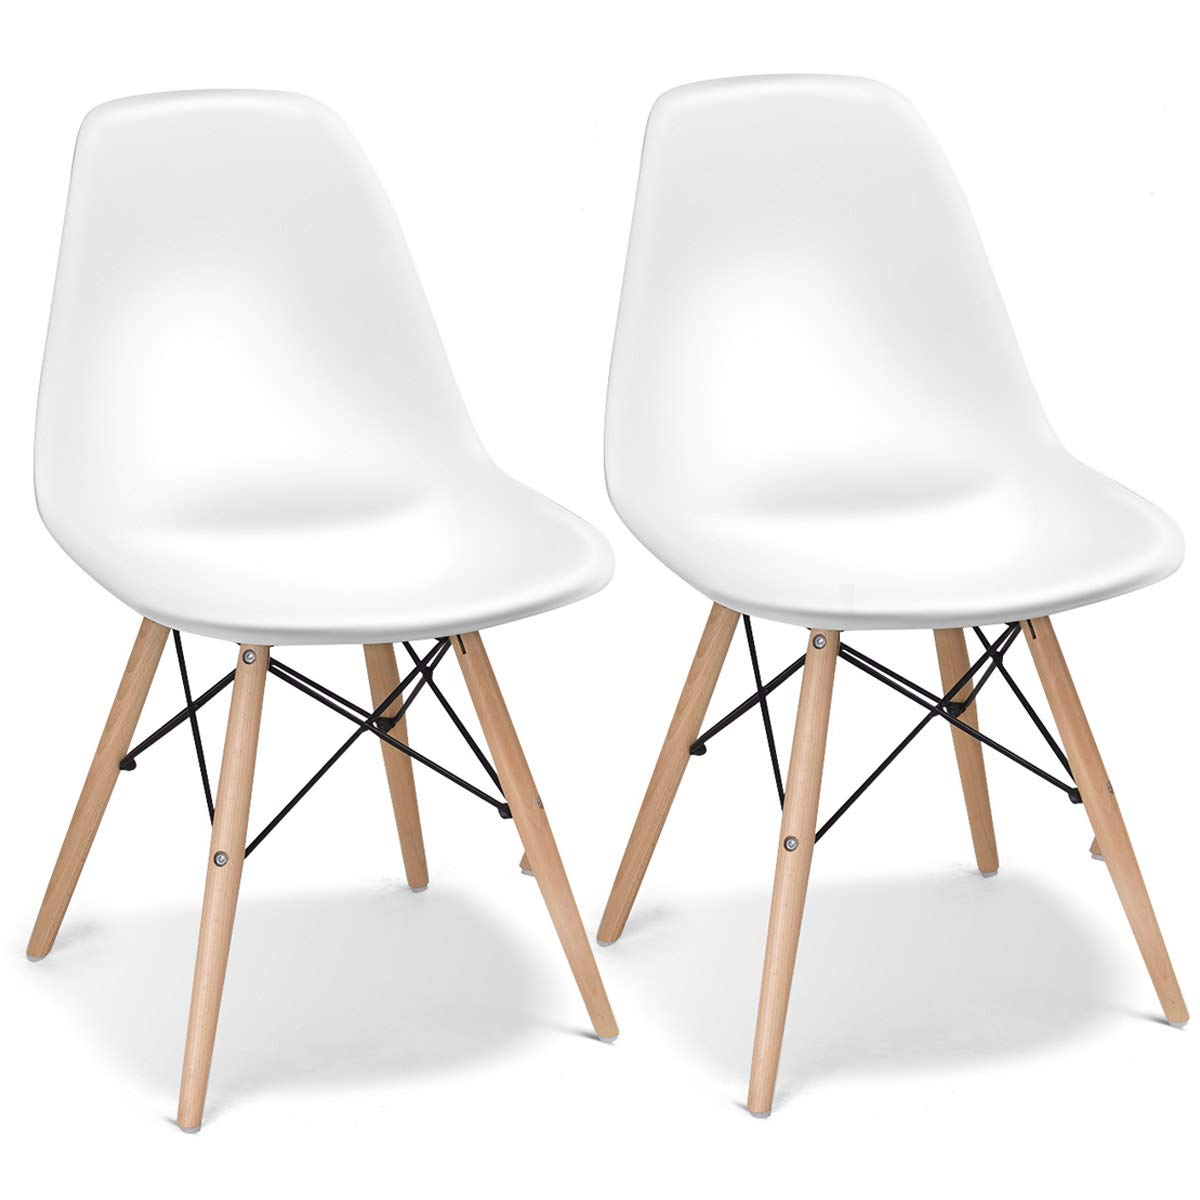 Giantex Set of 2 Mid Century Armless Modern Style Plastic Seat Wood Dowel Legs for Bedroom Accent Living Room DSW Chair, White by Giantex